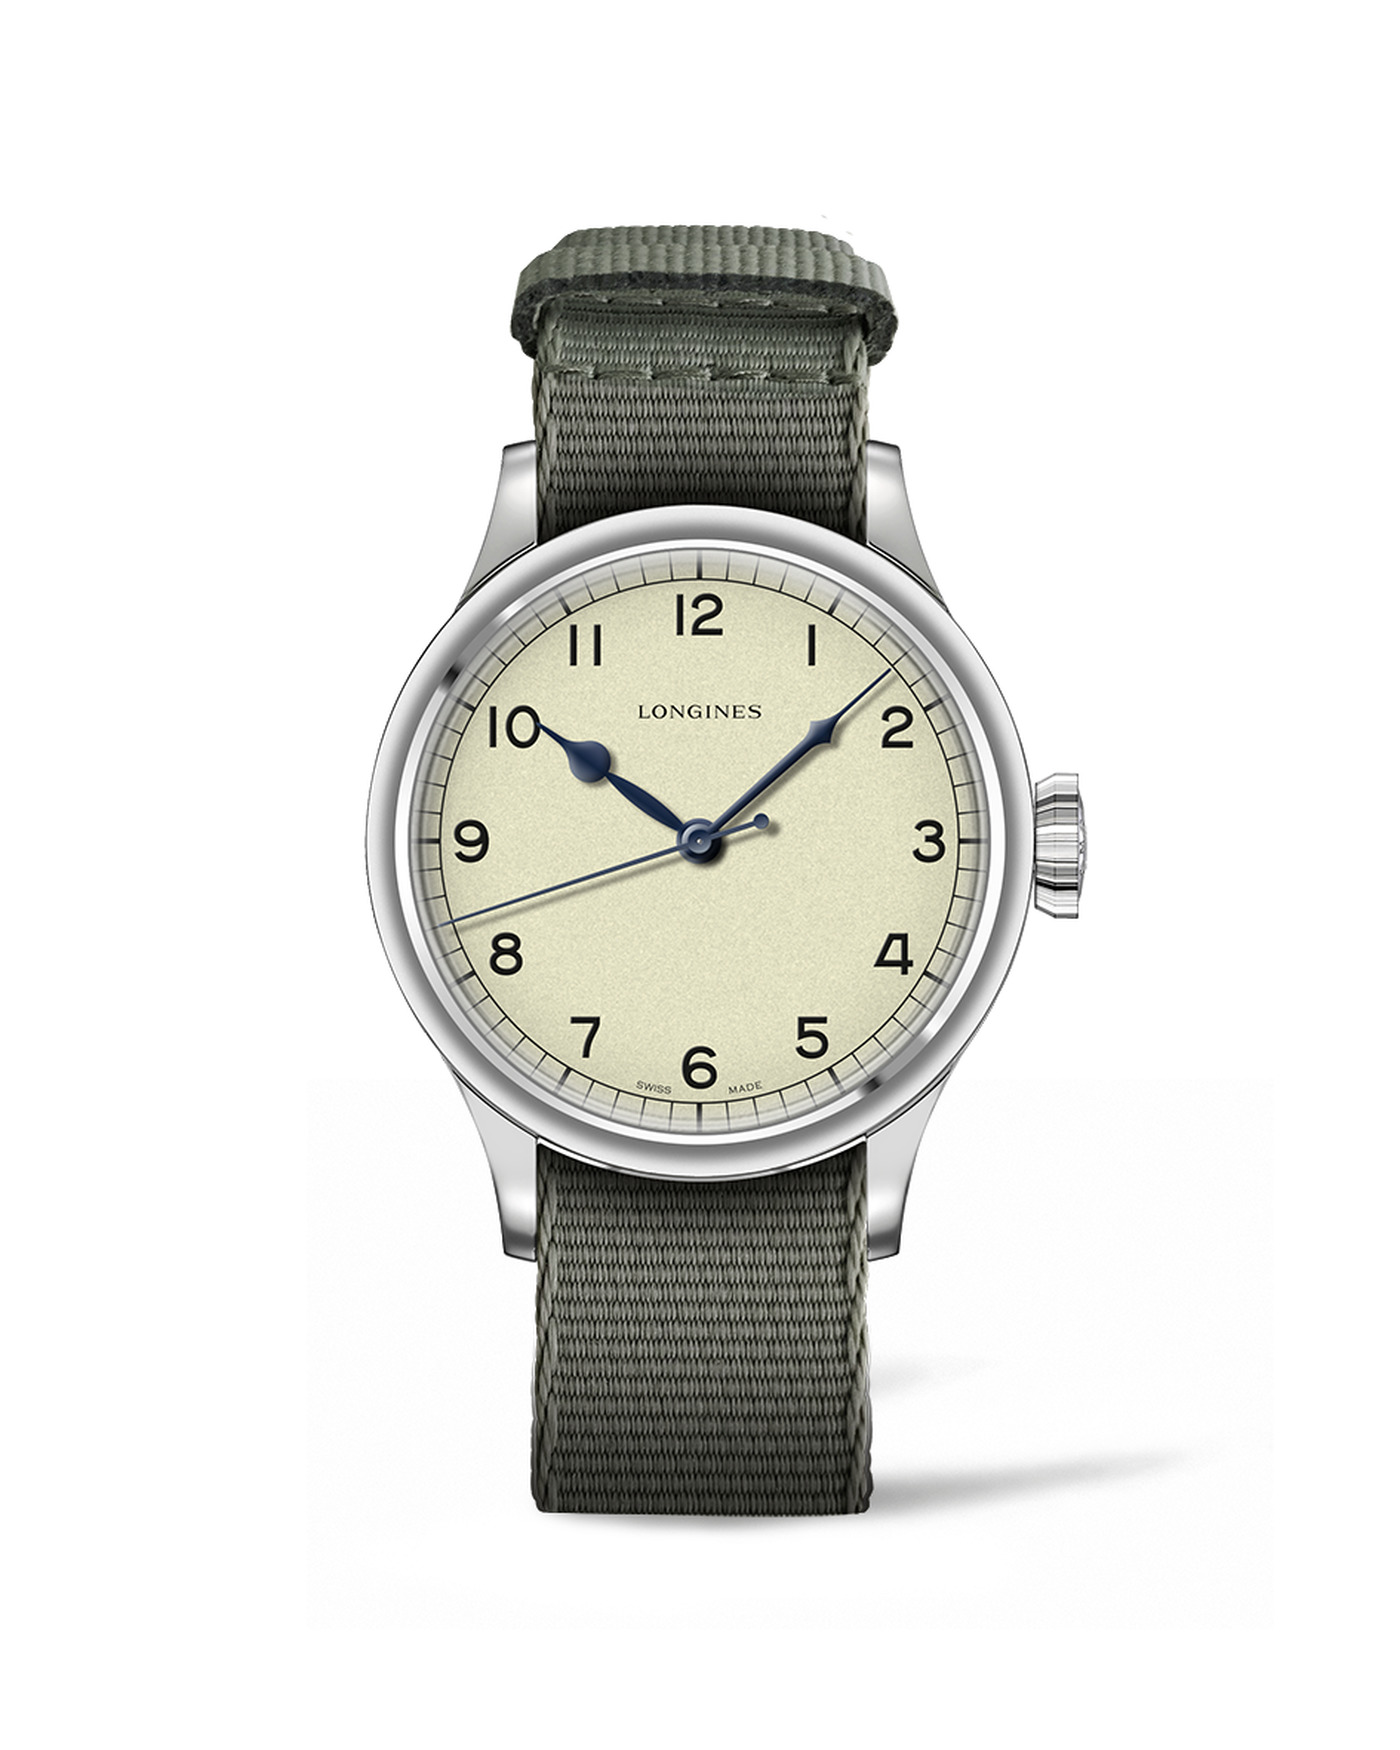 Longines The Longines Heritage Military Watch 7